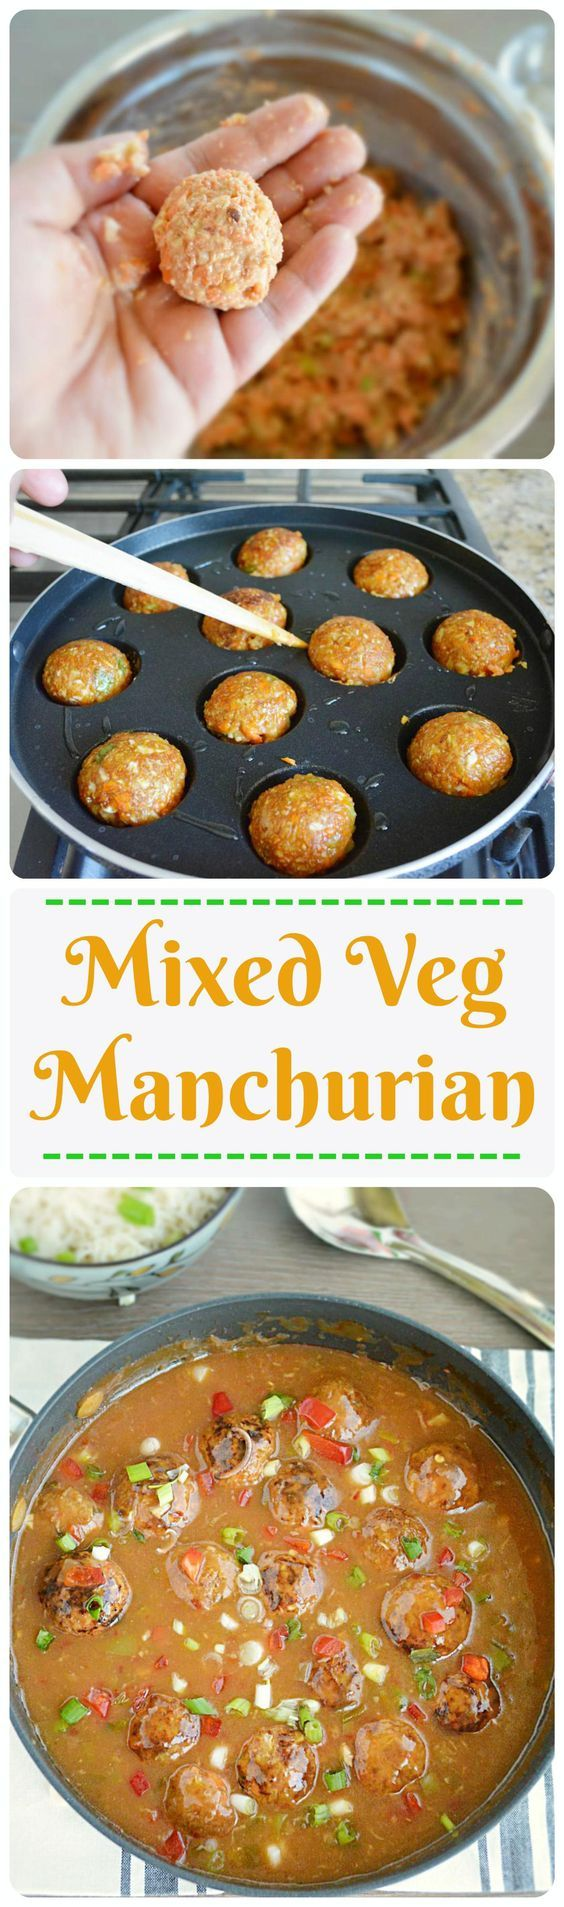 Enjoy the healthy version of non fried mixed veg manchurian dumplings tossed in soy based gravy is a popular Indo - Chinese recipe. Pair it with white rice or noodles to create a lip smacking meal.